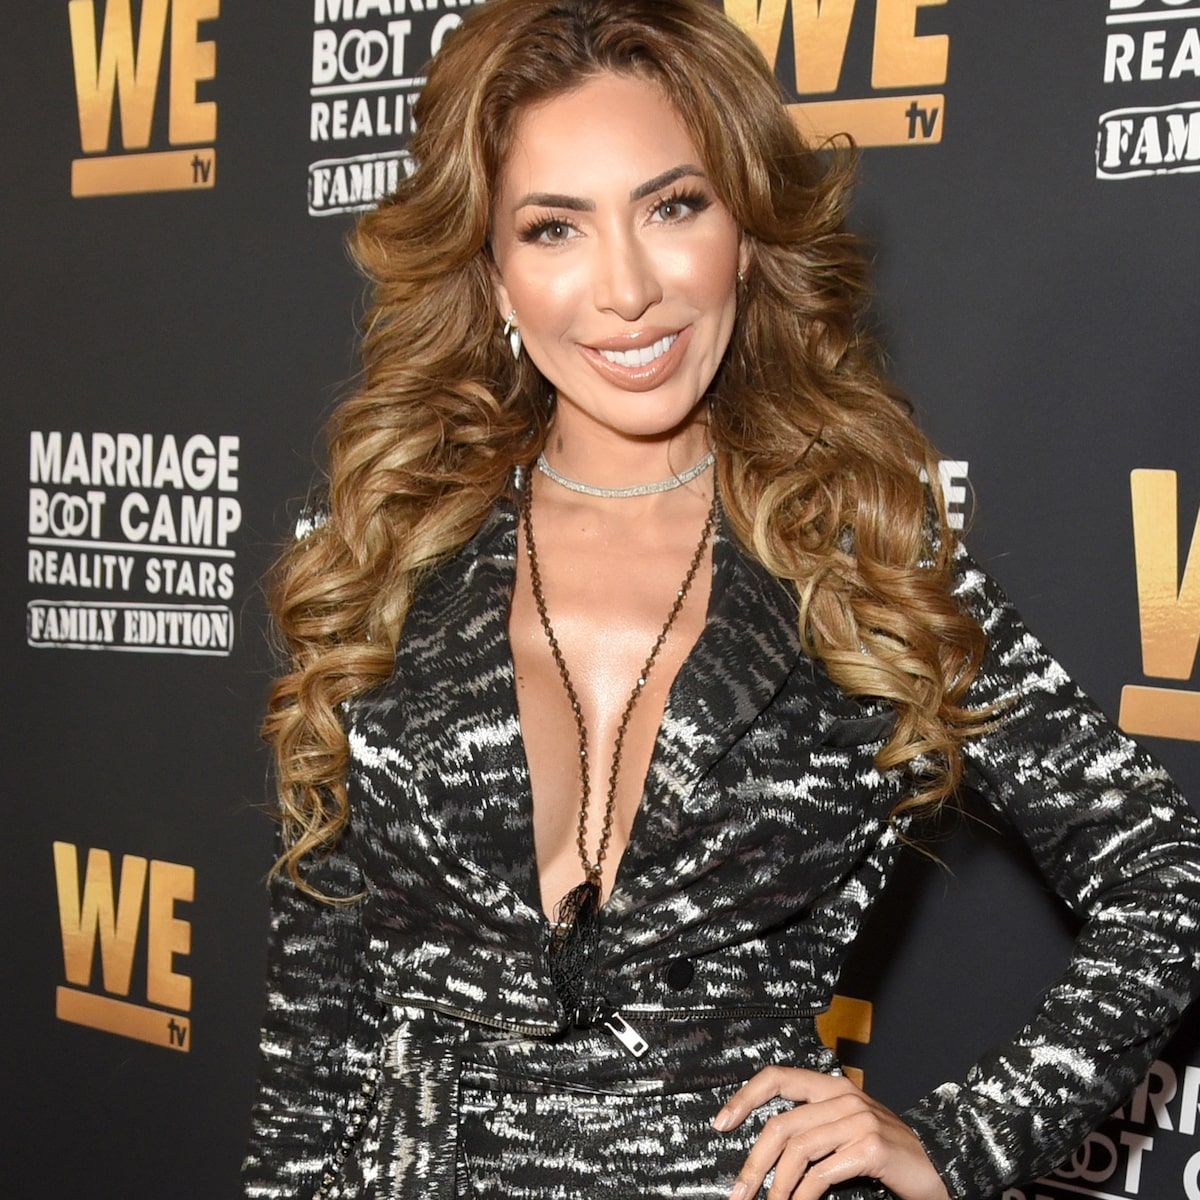 Ideas 65 of Farrah Abraham Back Door And More | mfvolibrosymas